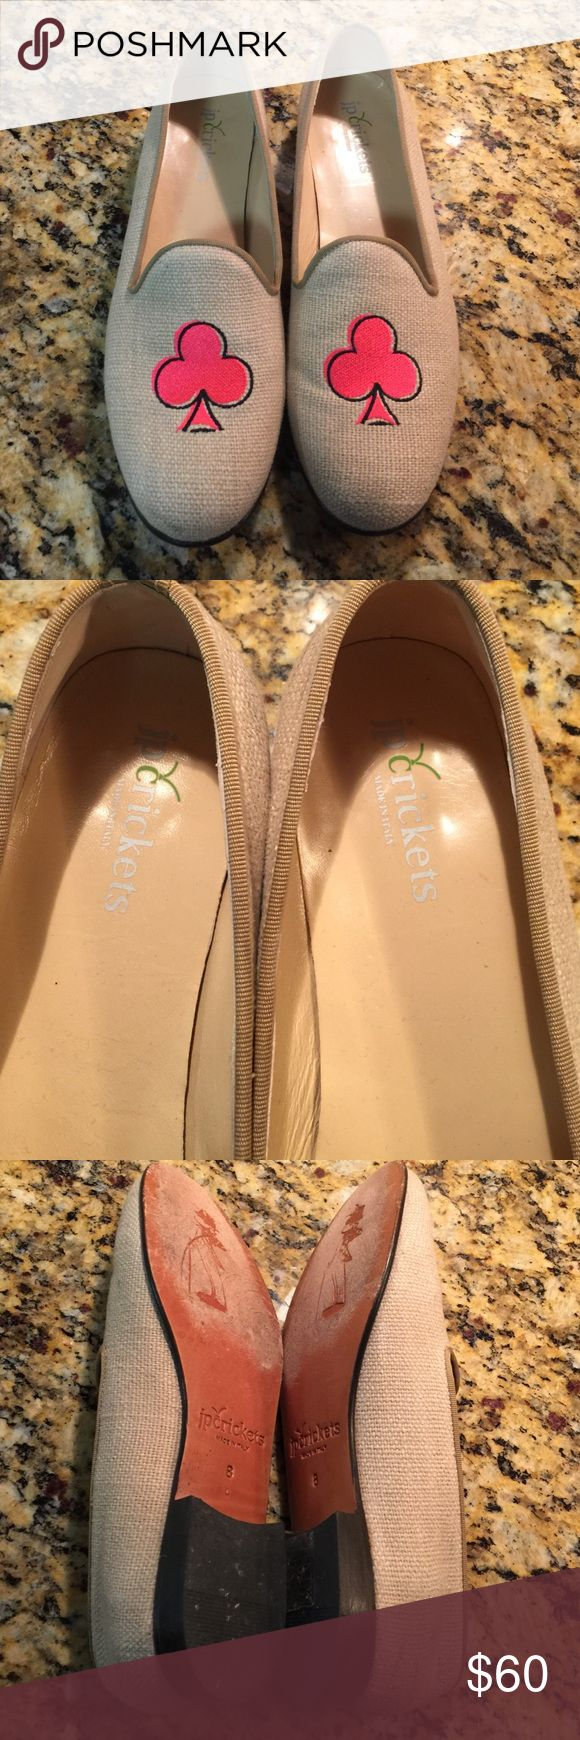 JP Crickets Spade Loafers Sz 8. These are so cute and are very gently worn. Retail for over $300!  Gorgeous preppy style linen shoes. Last photo is an example from the JP Crickets website. JP Crickets Shoes Flats & Loafers